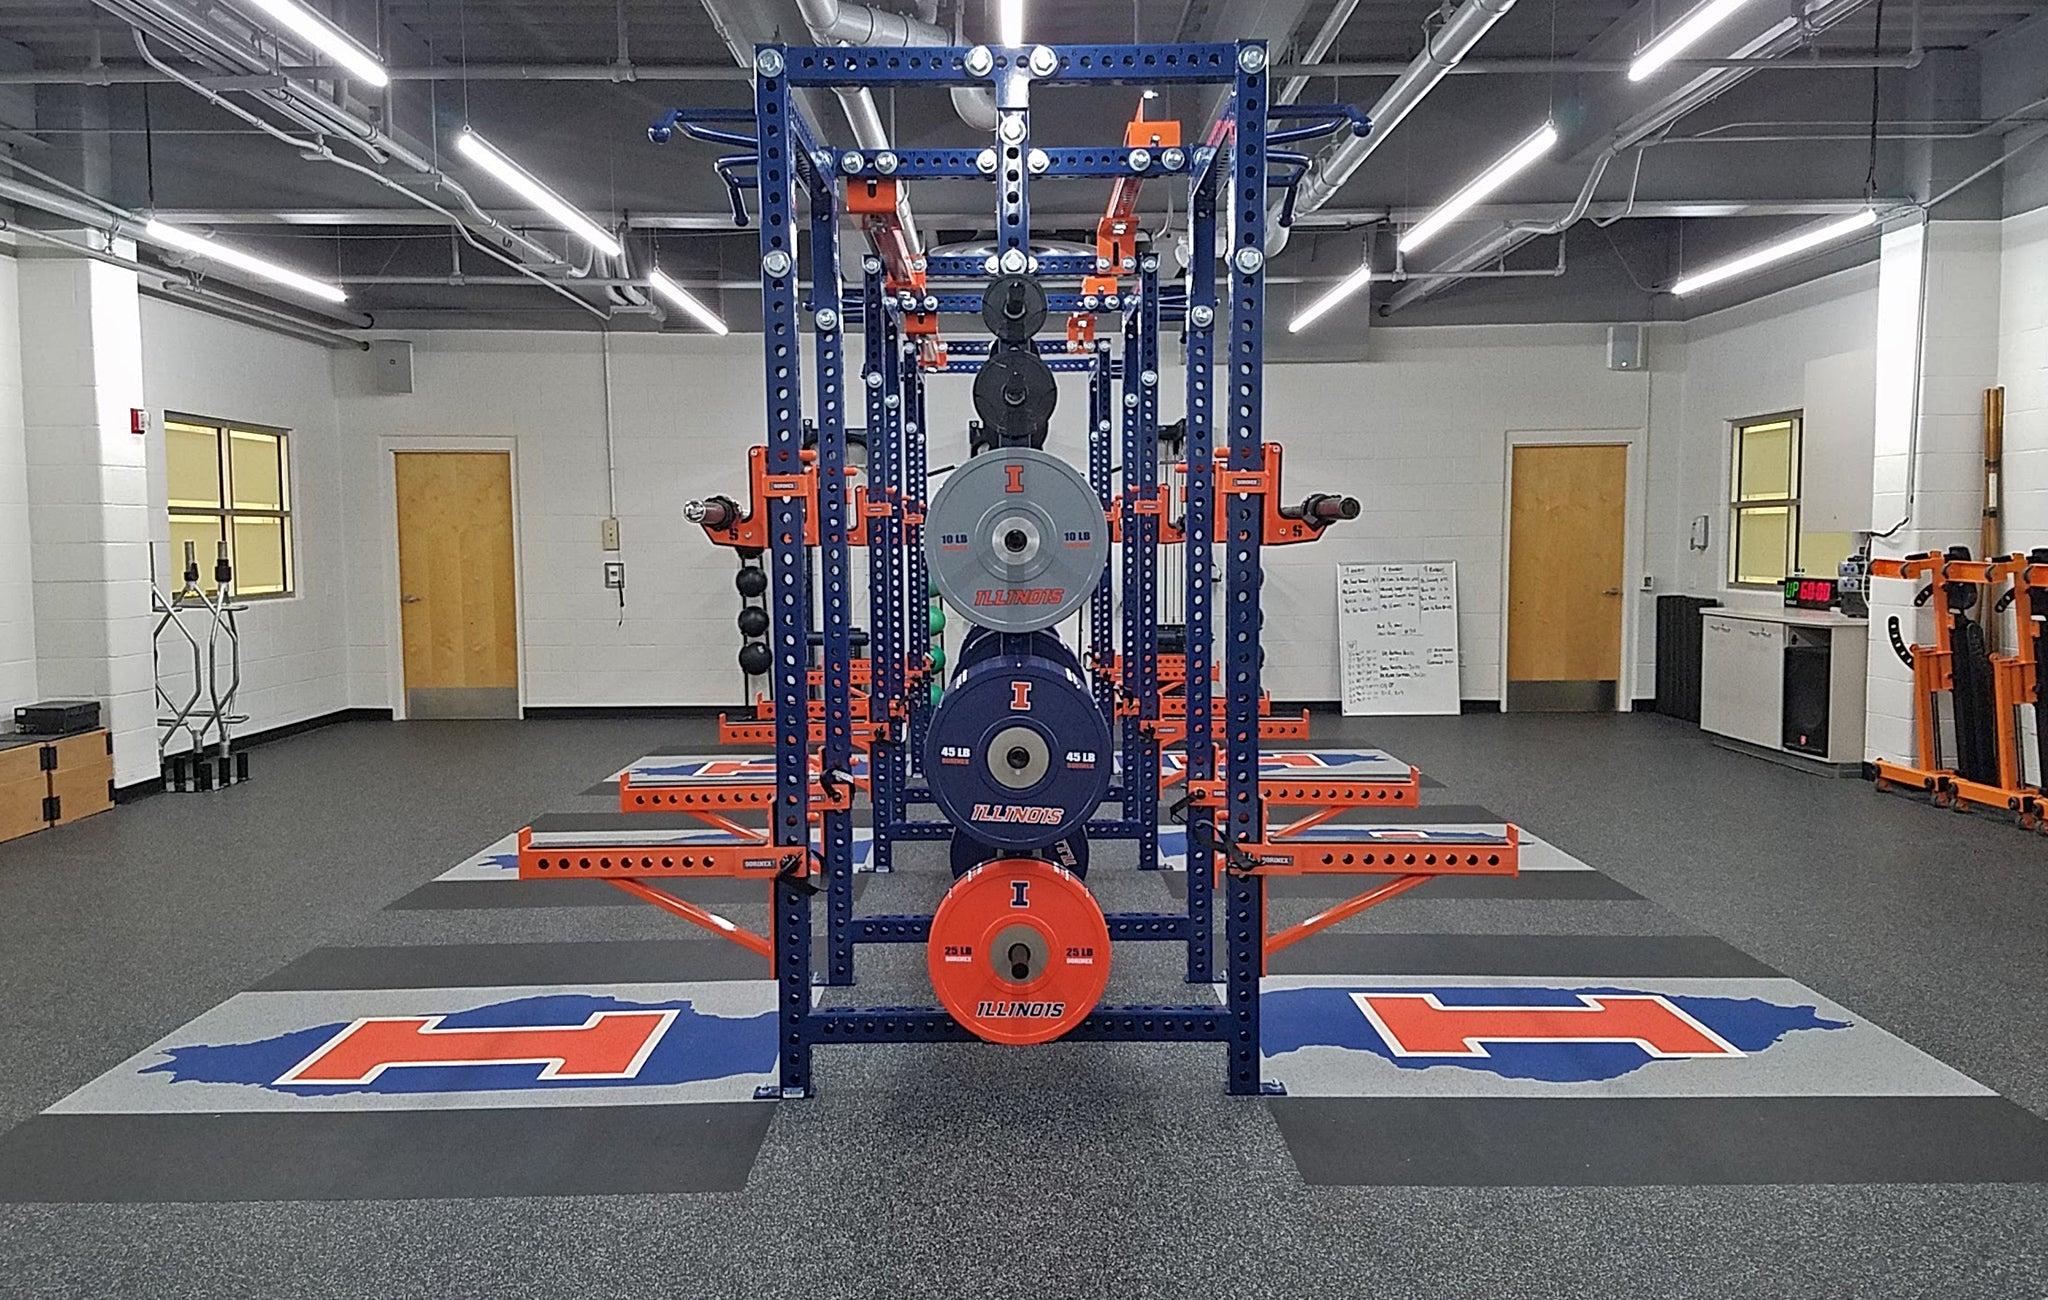 University of Illinois Basketball strength and conditioning